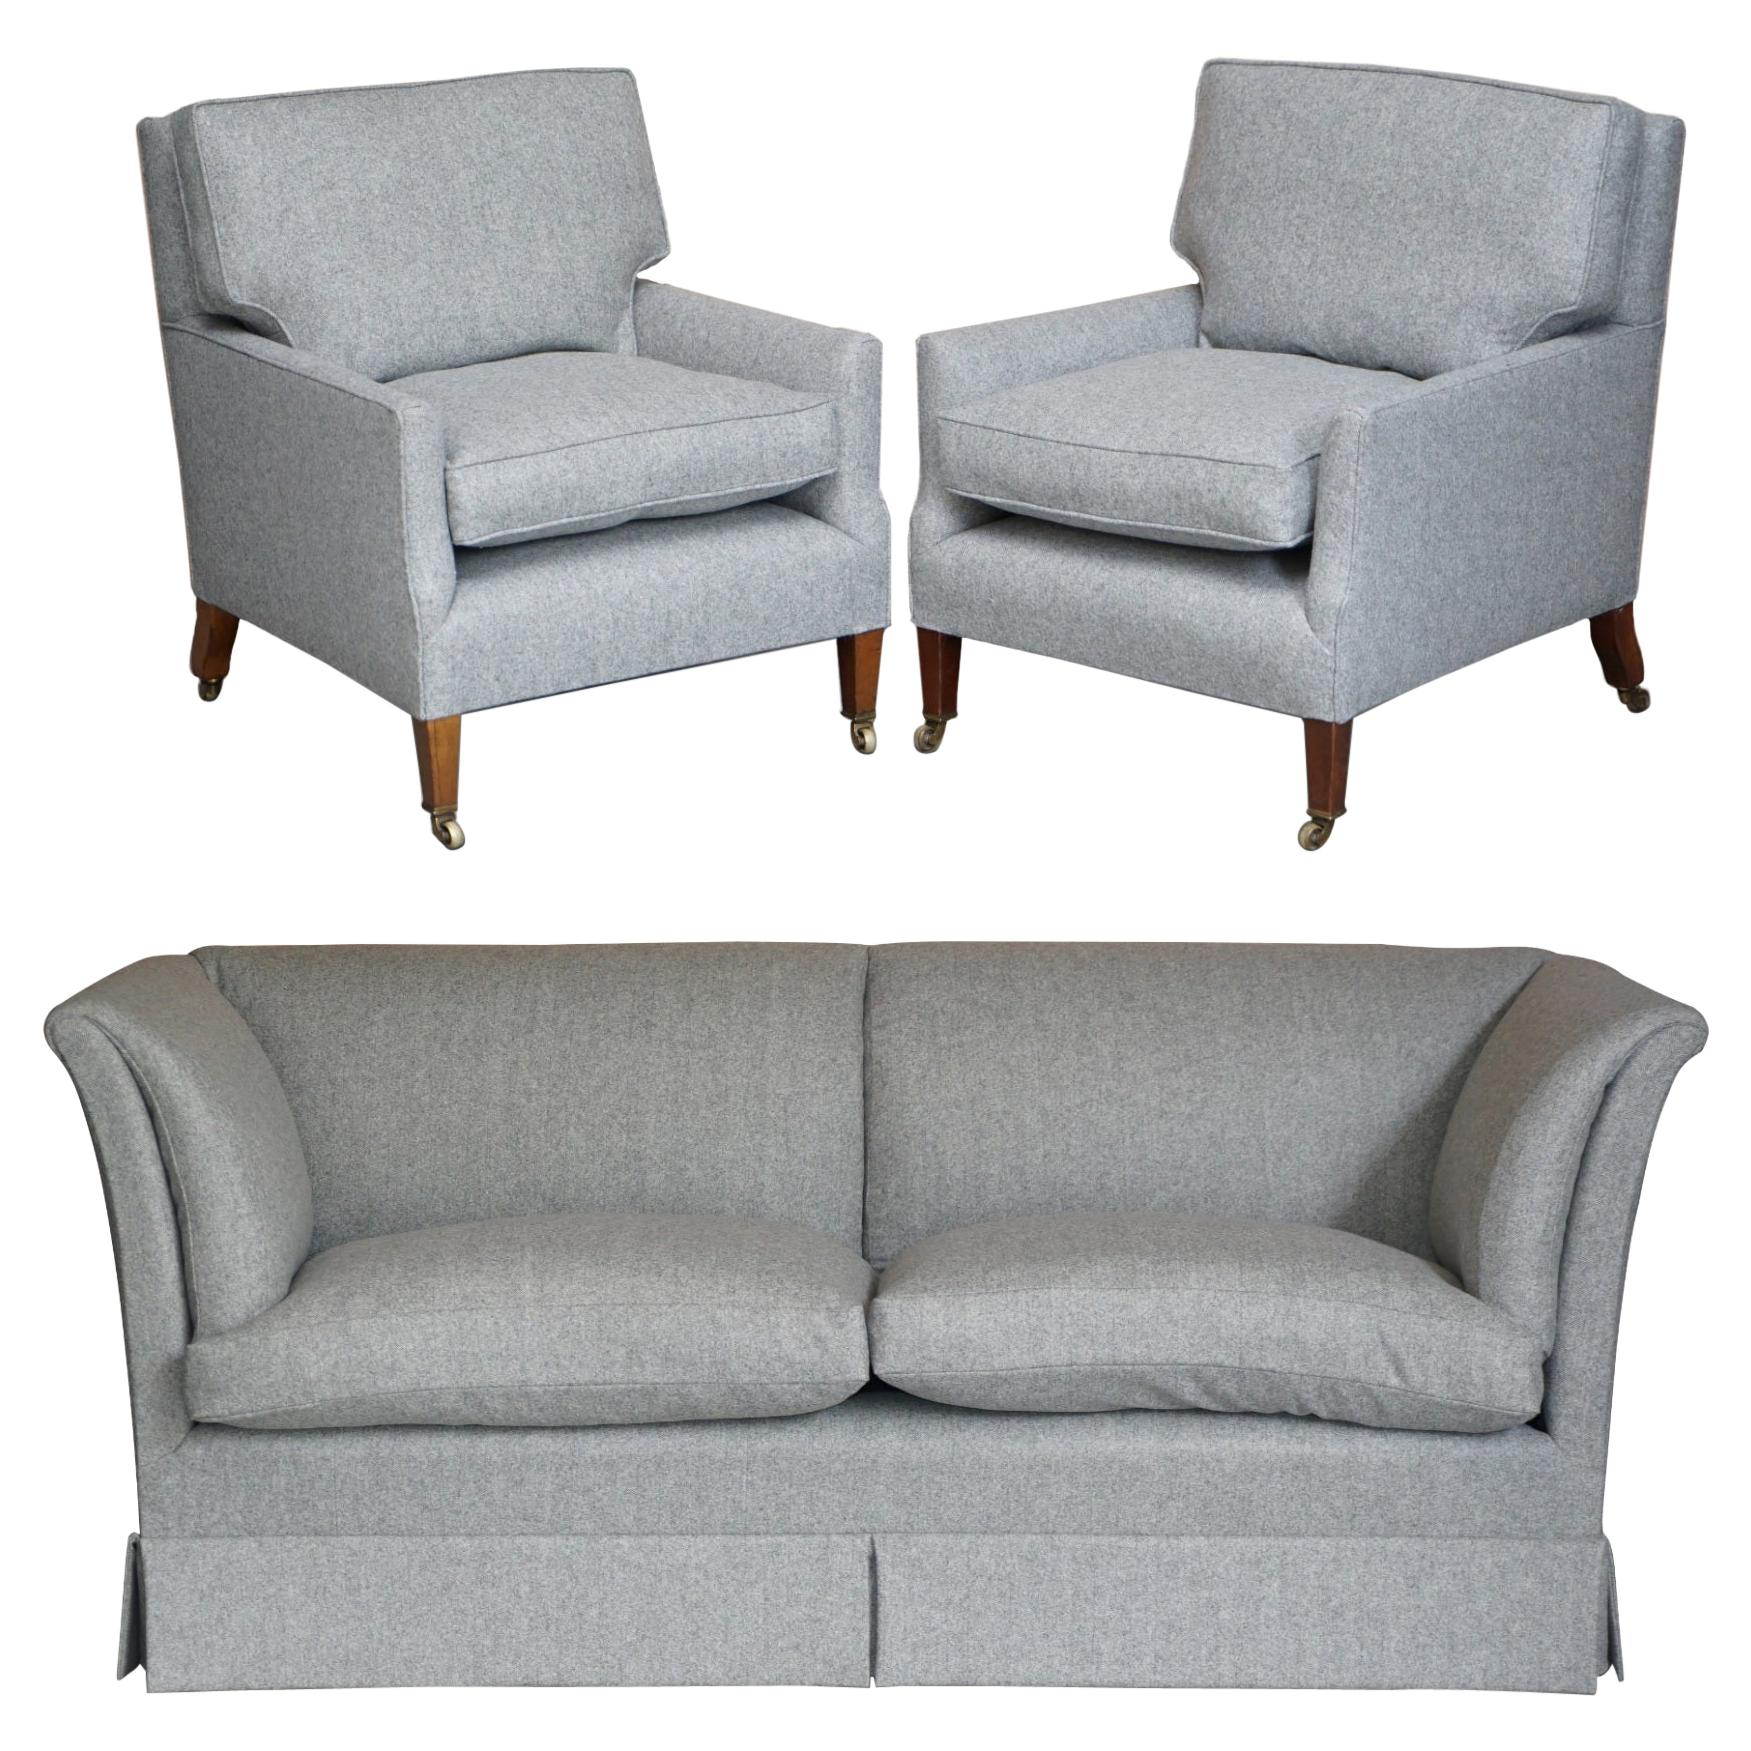 Fine Suite of Restored Howard & Son's Berners Street Sofa and Pair of Armchairs